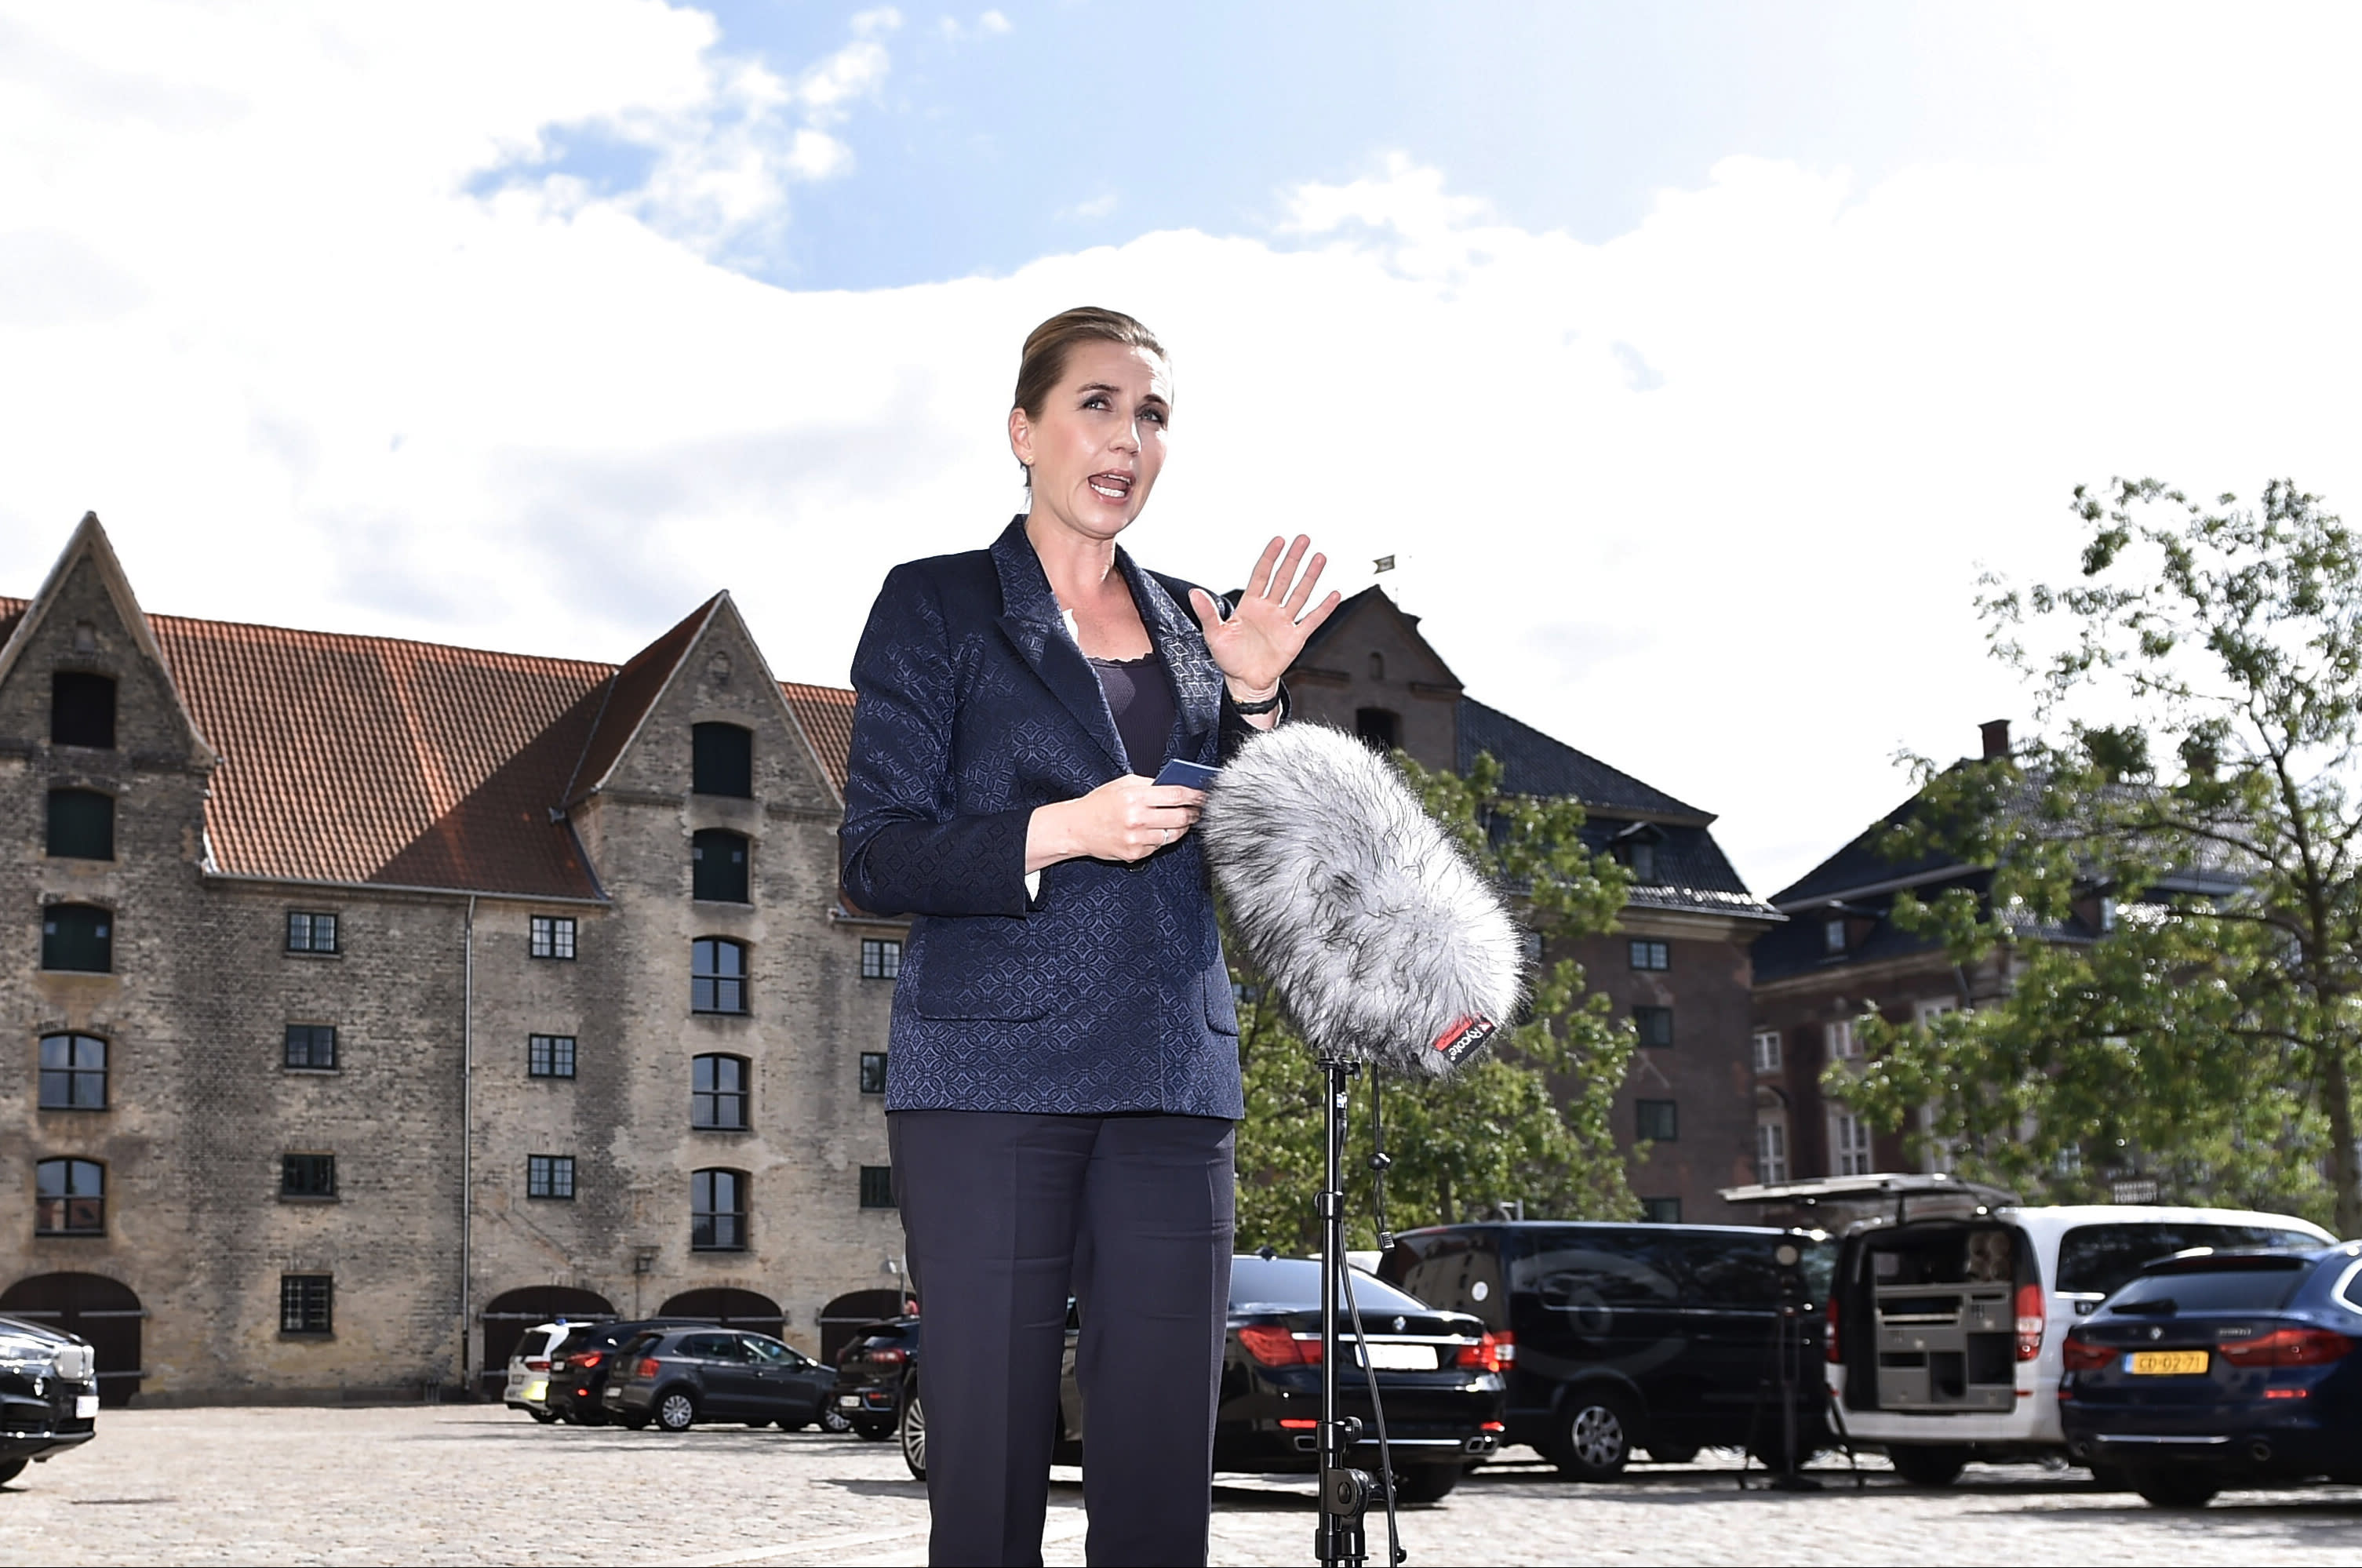 """Denmark's Prime Minister Mette Frederiksen makes a comment on US President's cancellation of his scheduled State Visit, in front of the State Department in Copenhagen, Wednesday, Aug. 21, 2019. U.S. President Trump announced his decision to postpone a visit to Denmark by tweet on Tuesday Aug. 20, 2019, after Danish Prime Minister Mette Frederiksen dismissed the notion of selling Greenland to the U.S. as """"an absurd discussion."""" (Mads Claus Rasmussen / Ritzau Scanpix)"""